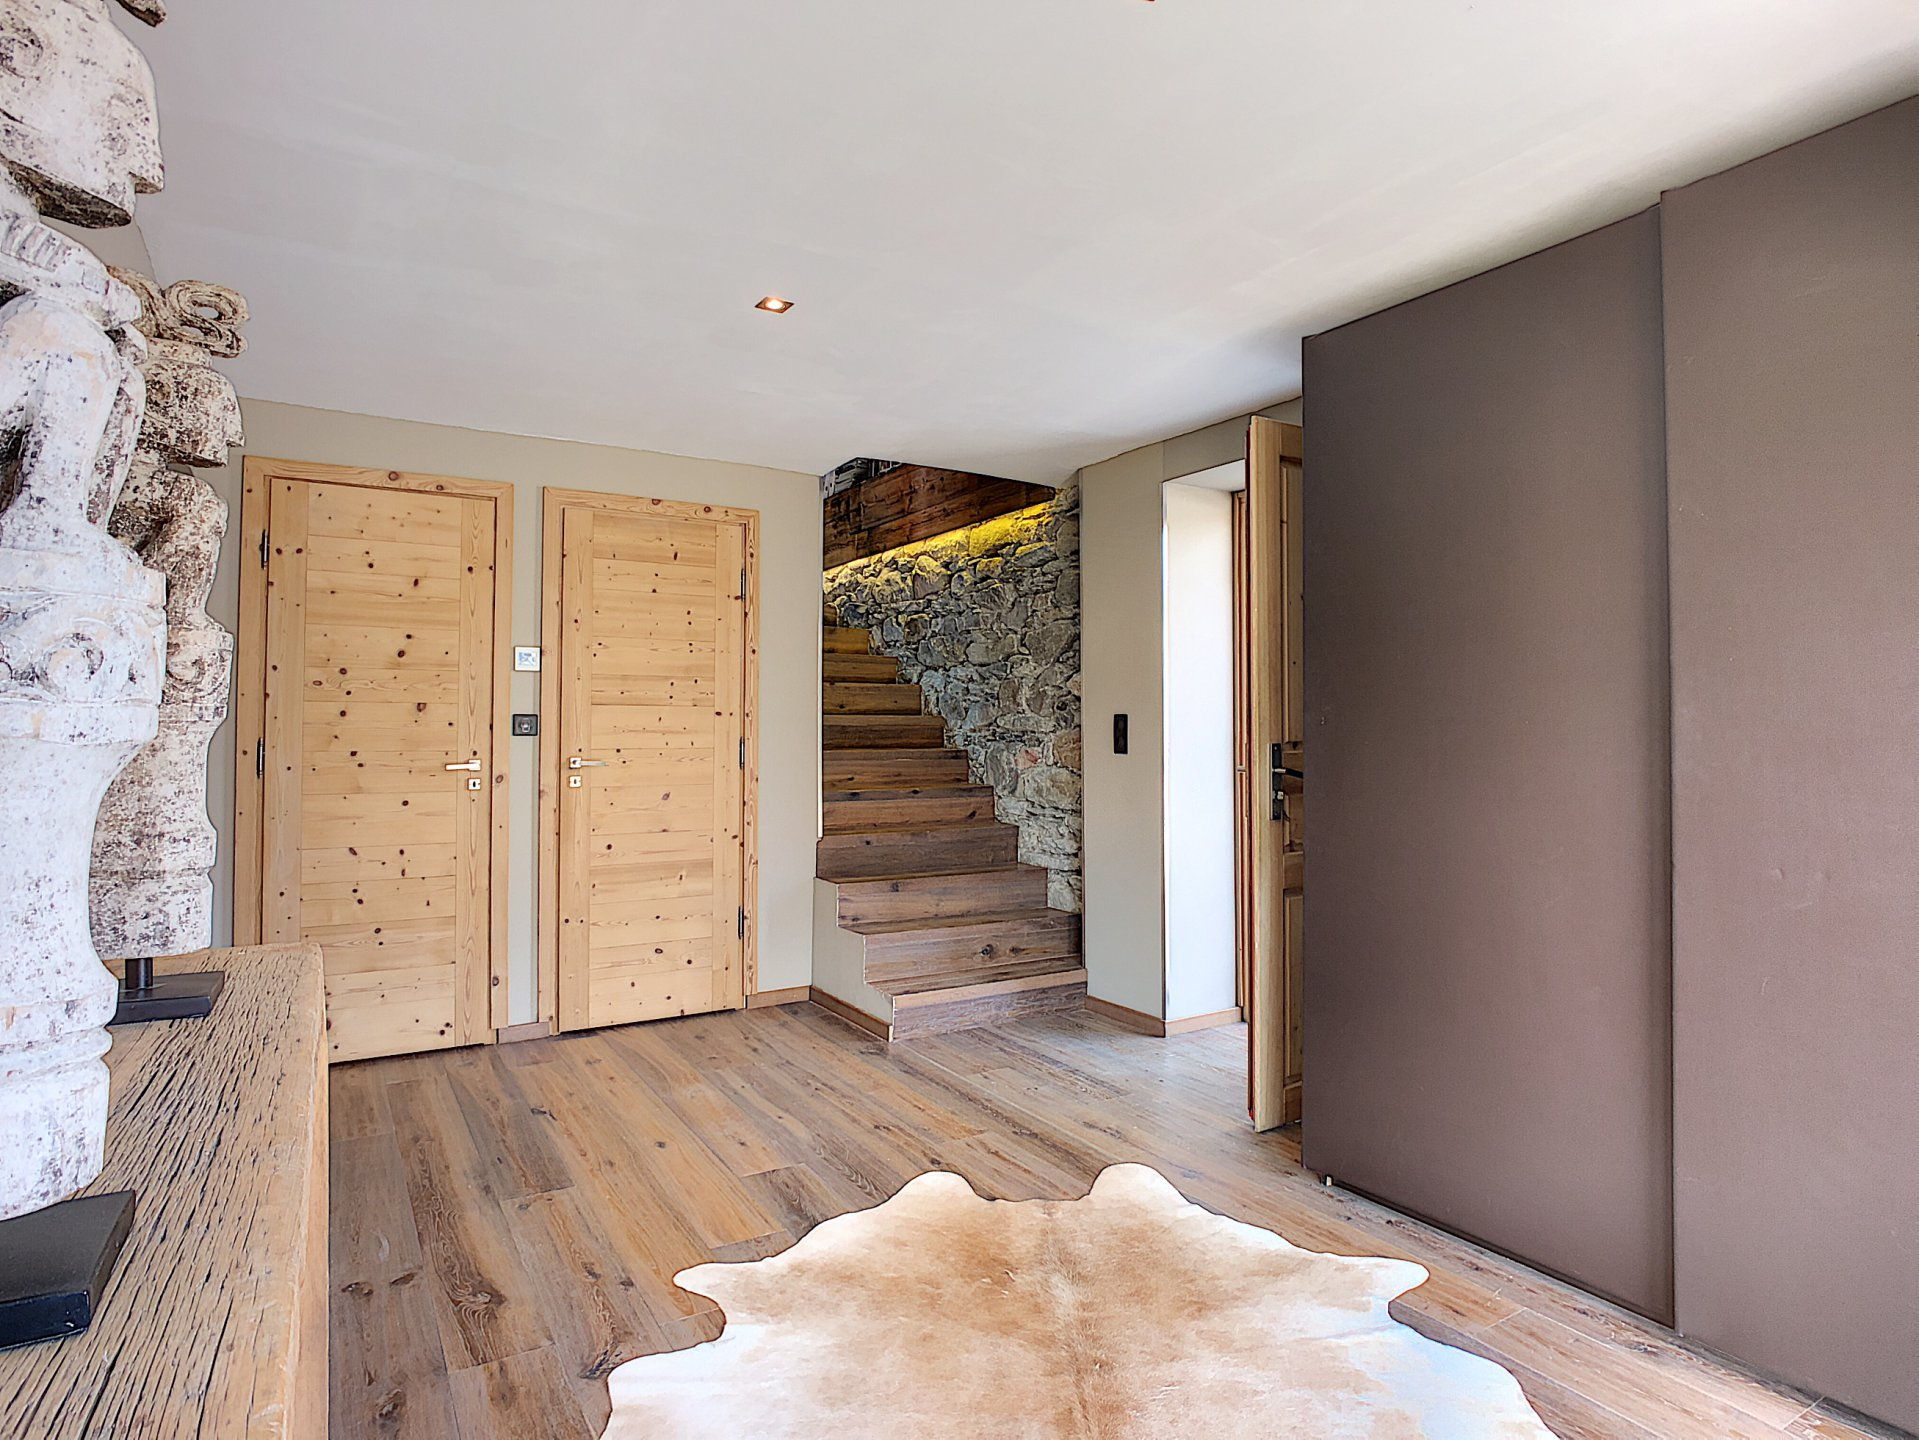 Chalet 3 en-suite bedrooms - Les Chavants, Les Houches